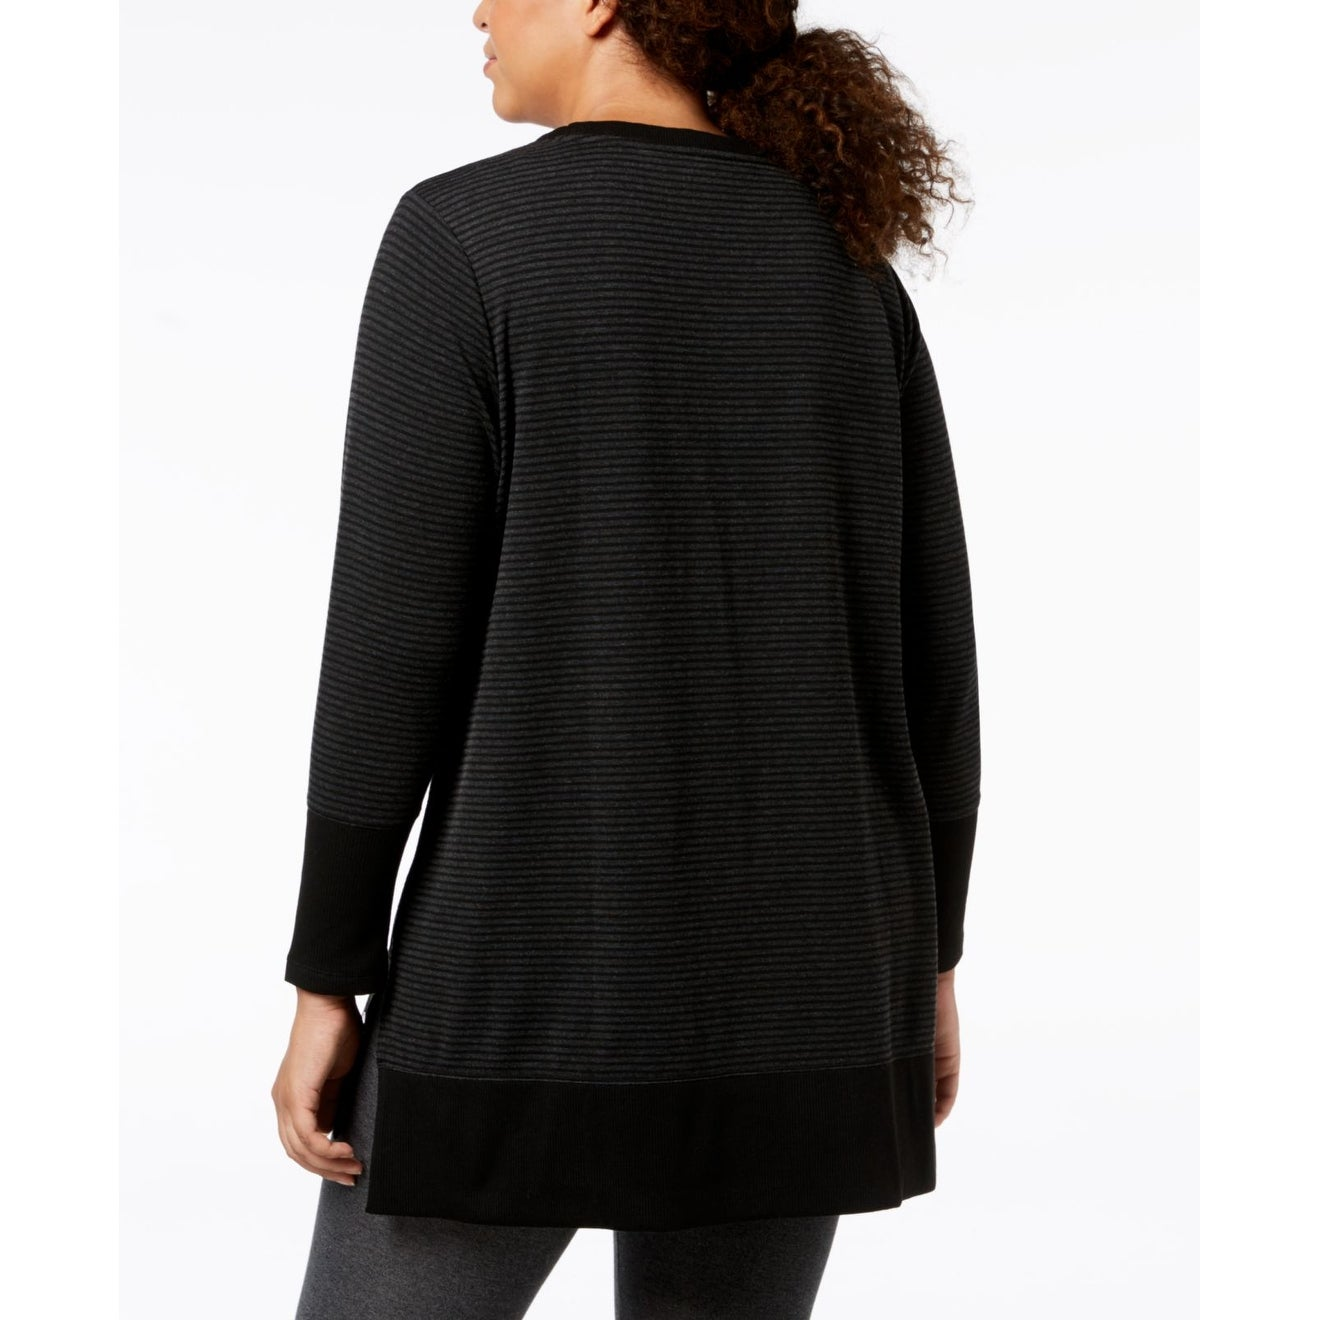 844431e007e Shop Ideology Black Women's Size 2X Plus Performance Striped Tunic Top -  Free Shipping On Orders Over $45 - Overstock - 28267926